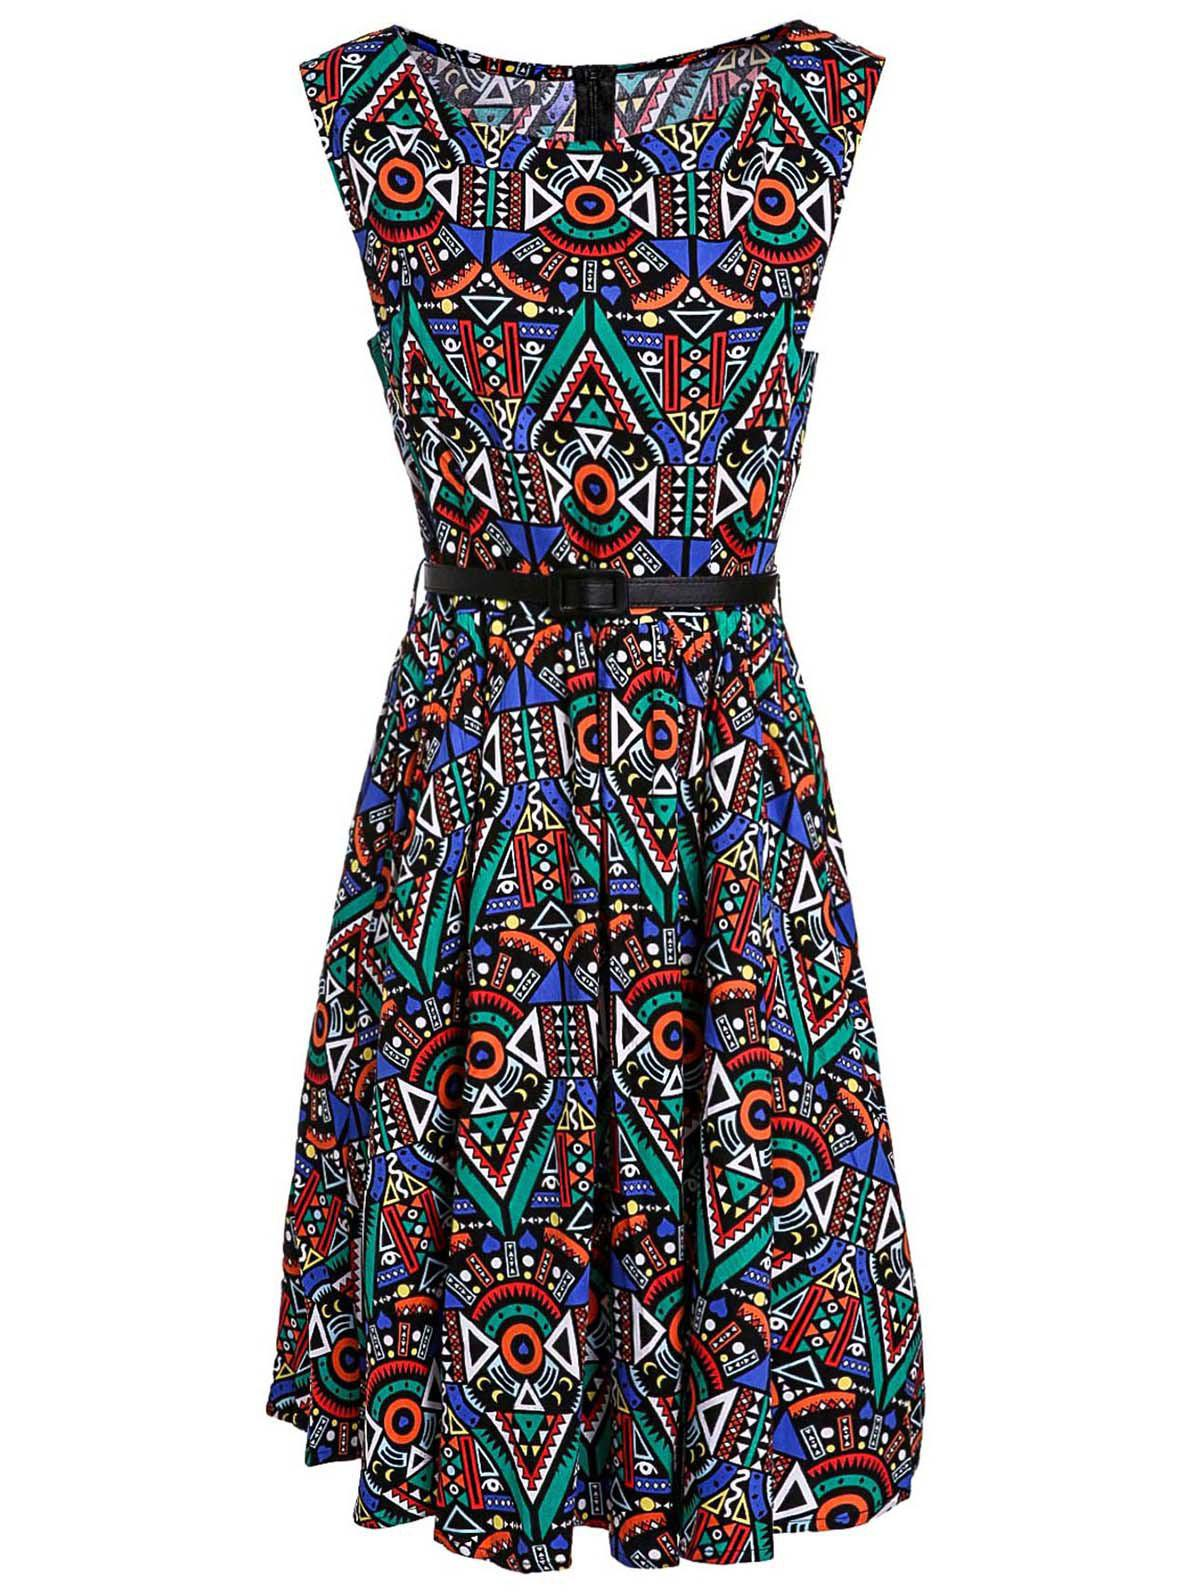 Retro Style Sleeveless Round Neck Printed Women's Ball Gown Dress - COLORMIX M